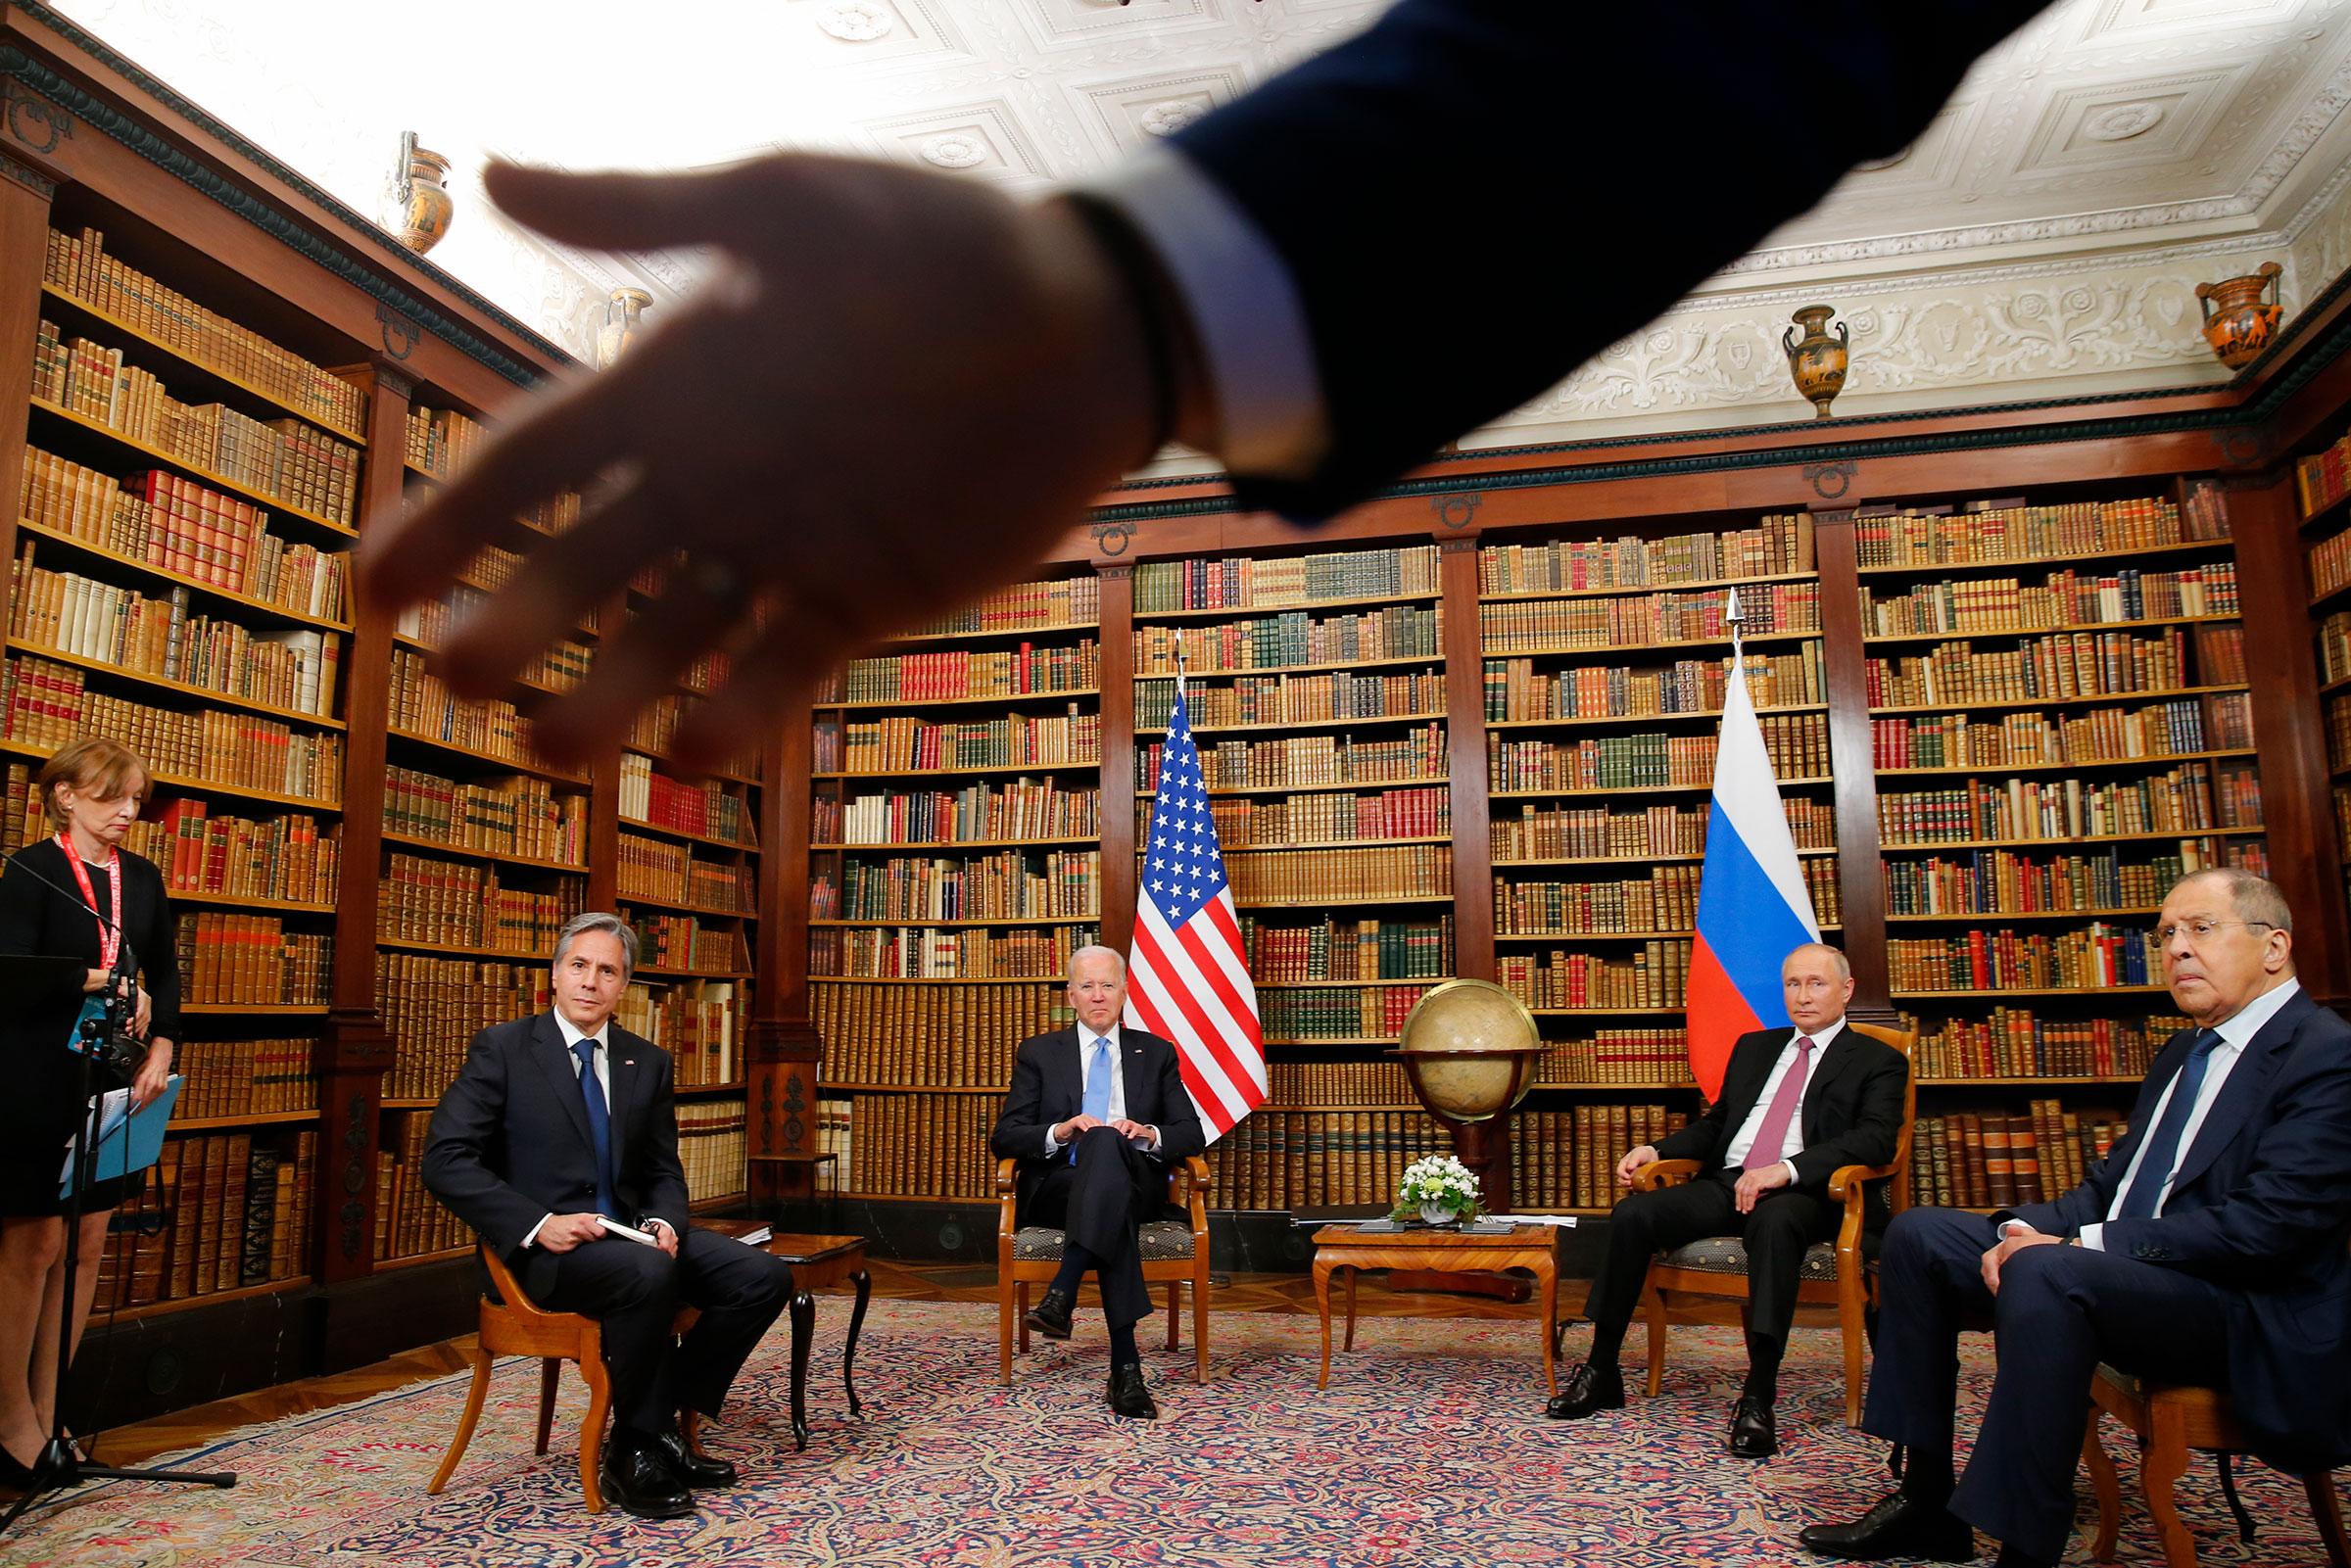 A security officer indicates to the media to step back as U.S. President Joe Biden, second from left, U.S. Secretary of State Antony Blinken, left, Russia's President Vladimir Putin, second from right, and Russia's Foreign Minister Sergei Lavrov, right, meet for the U.S.-Russia summit at Villa La Grange in Geneva, Switzerland, Wednesday, June 16, 2021.